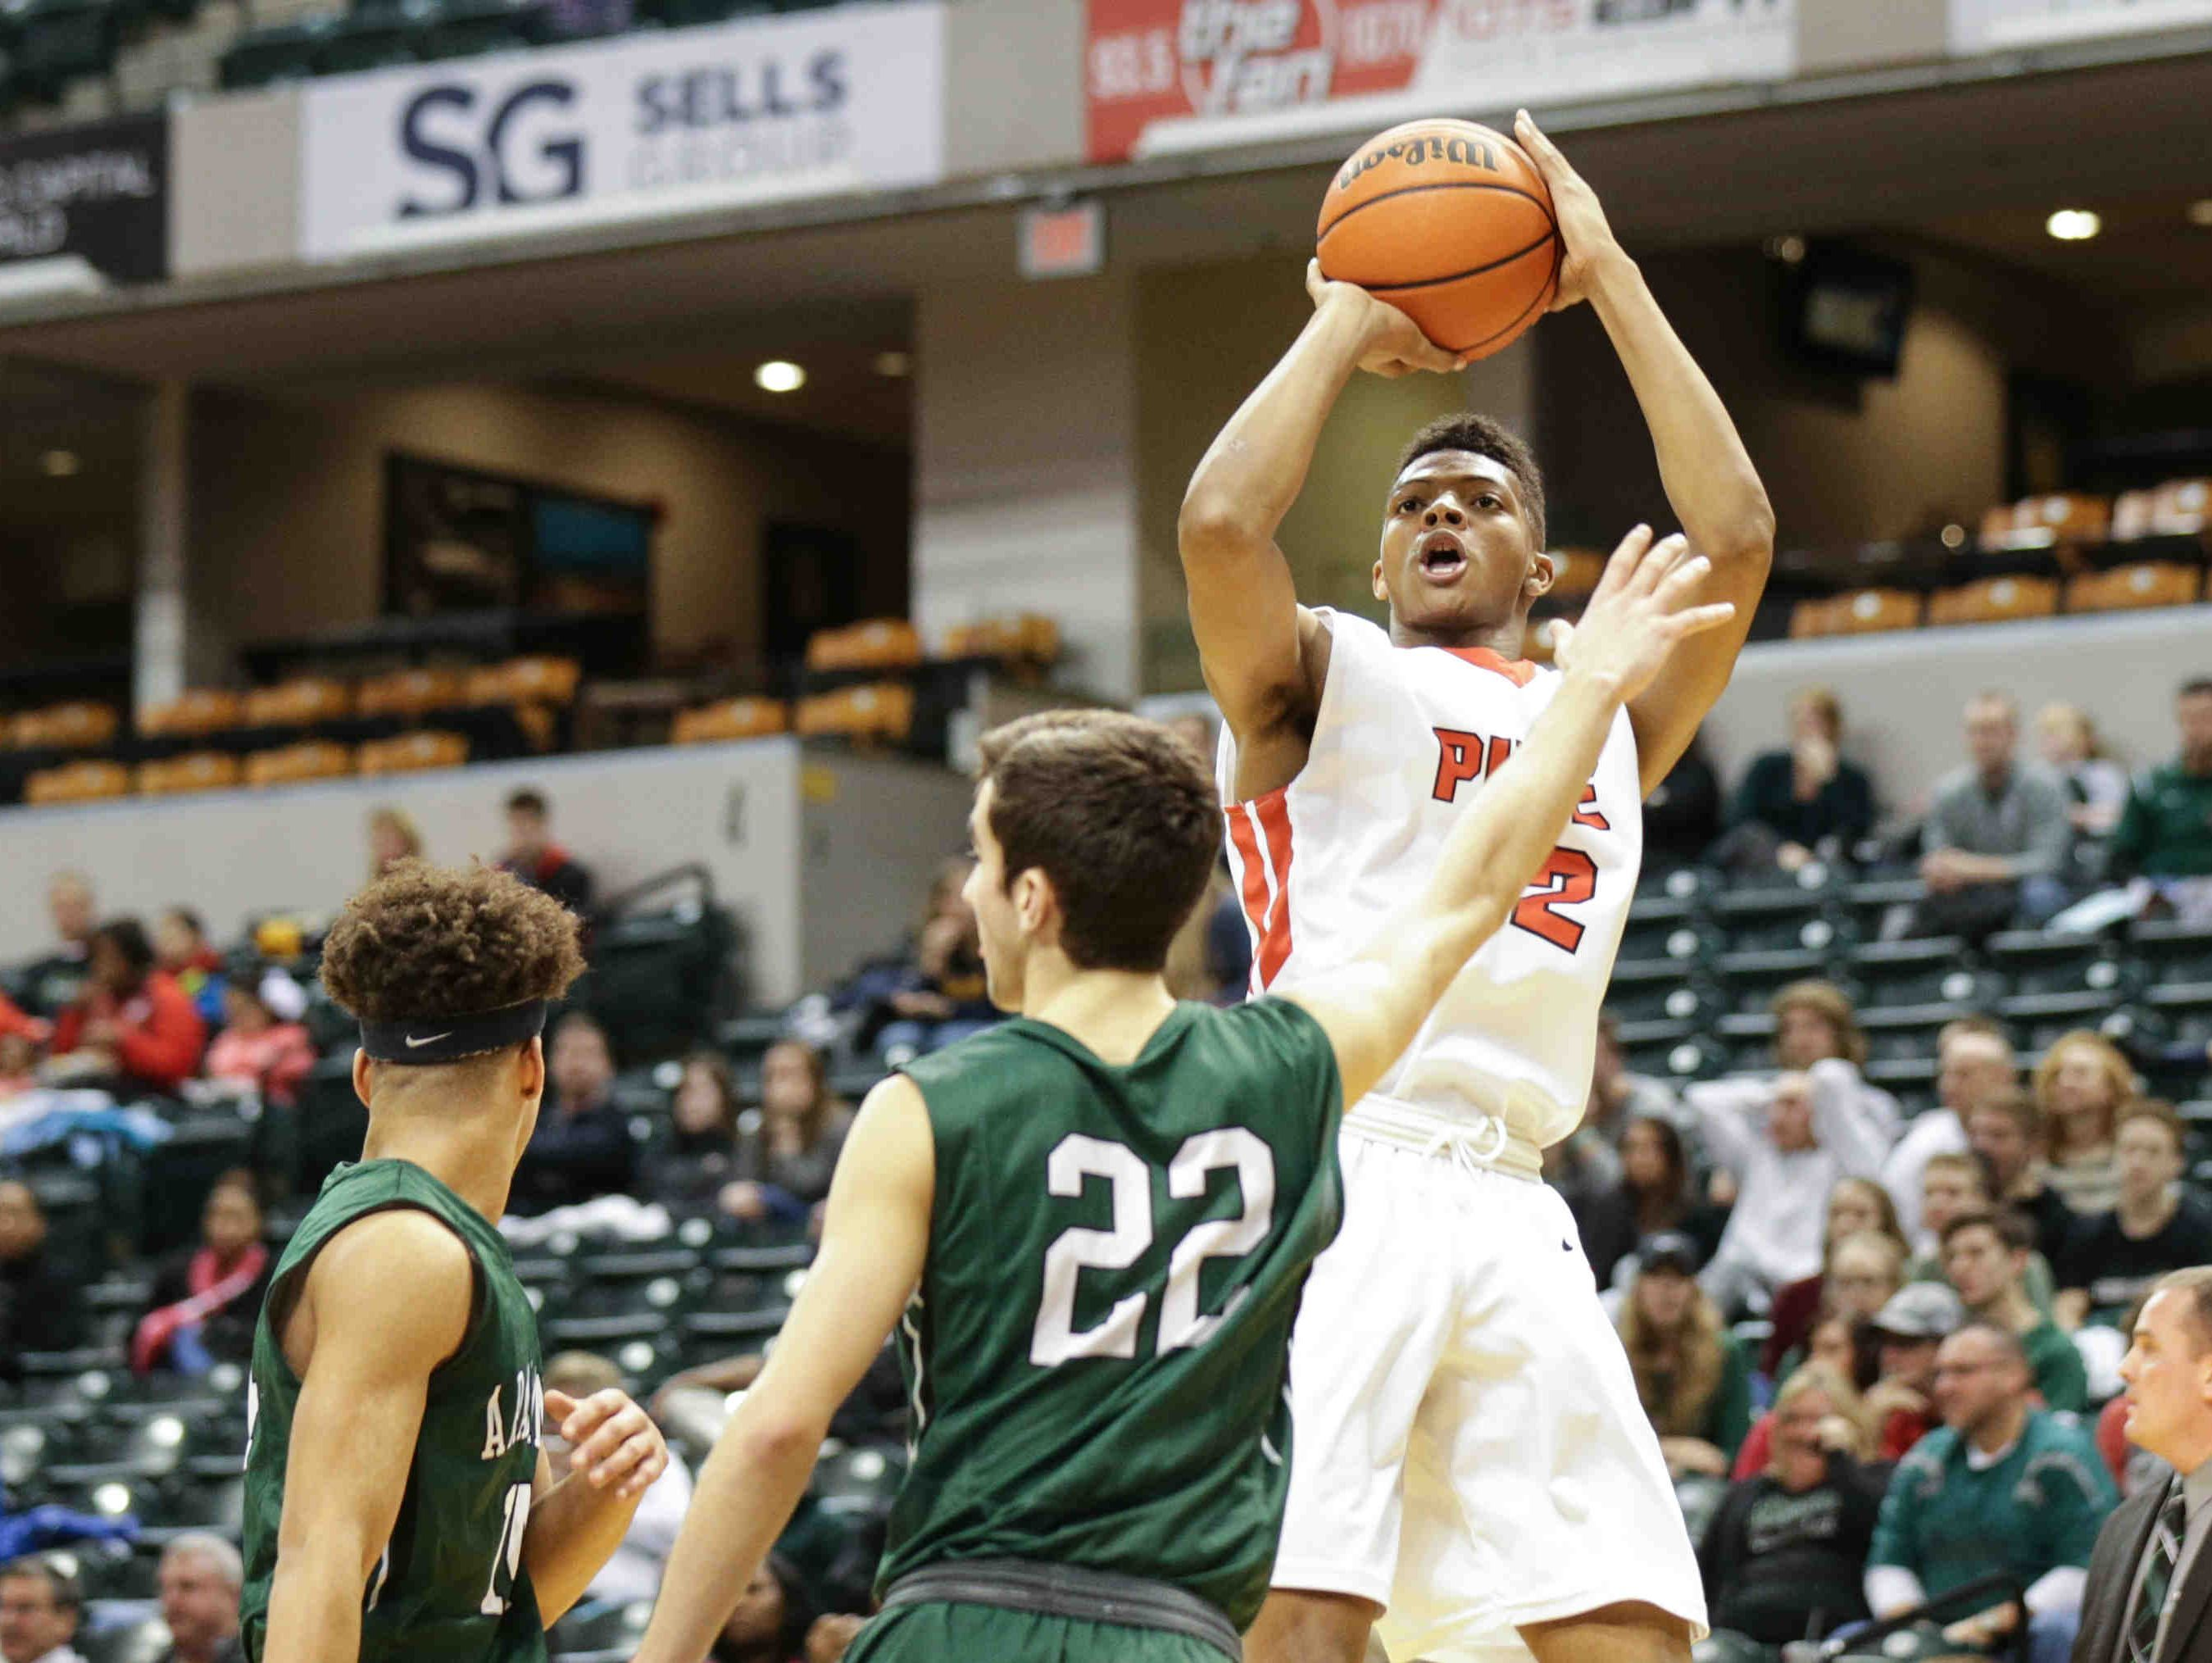 """Pike High School's Isiah James (42) hits a 2 point shot over Pendleton Height's Eston Stull (22) and Eli Pancol (14), during """"The Really Big Basketball Show, 2017"""", held at Bankers Life Fieldhouse, Jan 28, 2017. Pendleton Heights vs. Pike."""